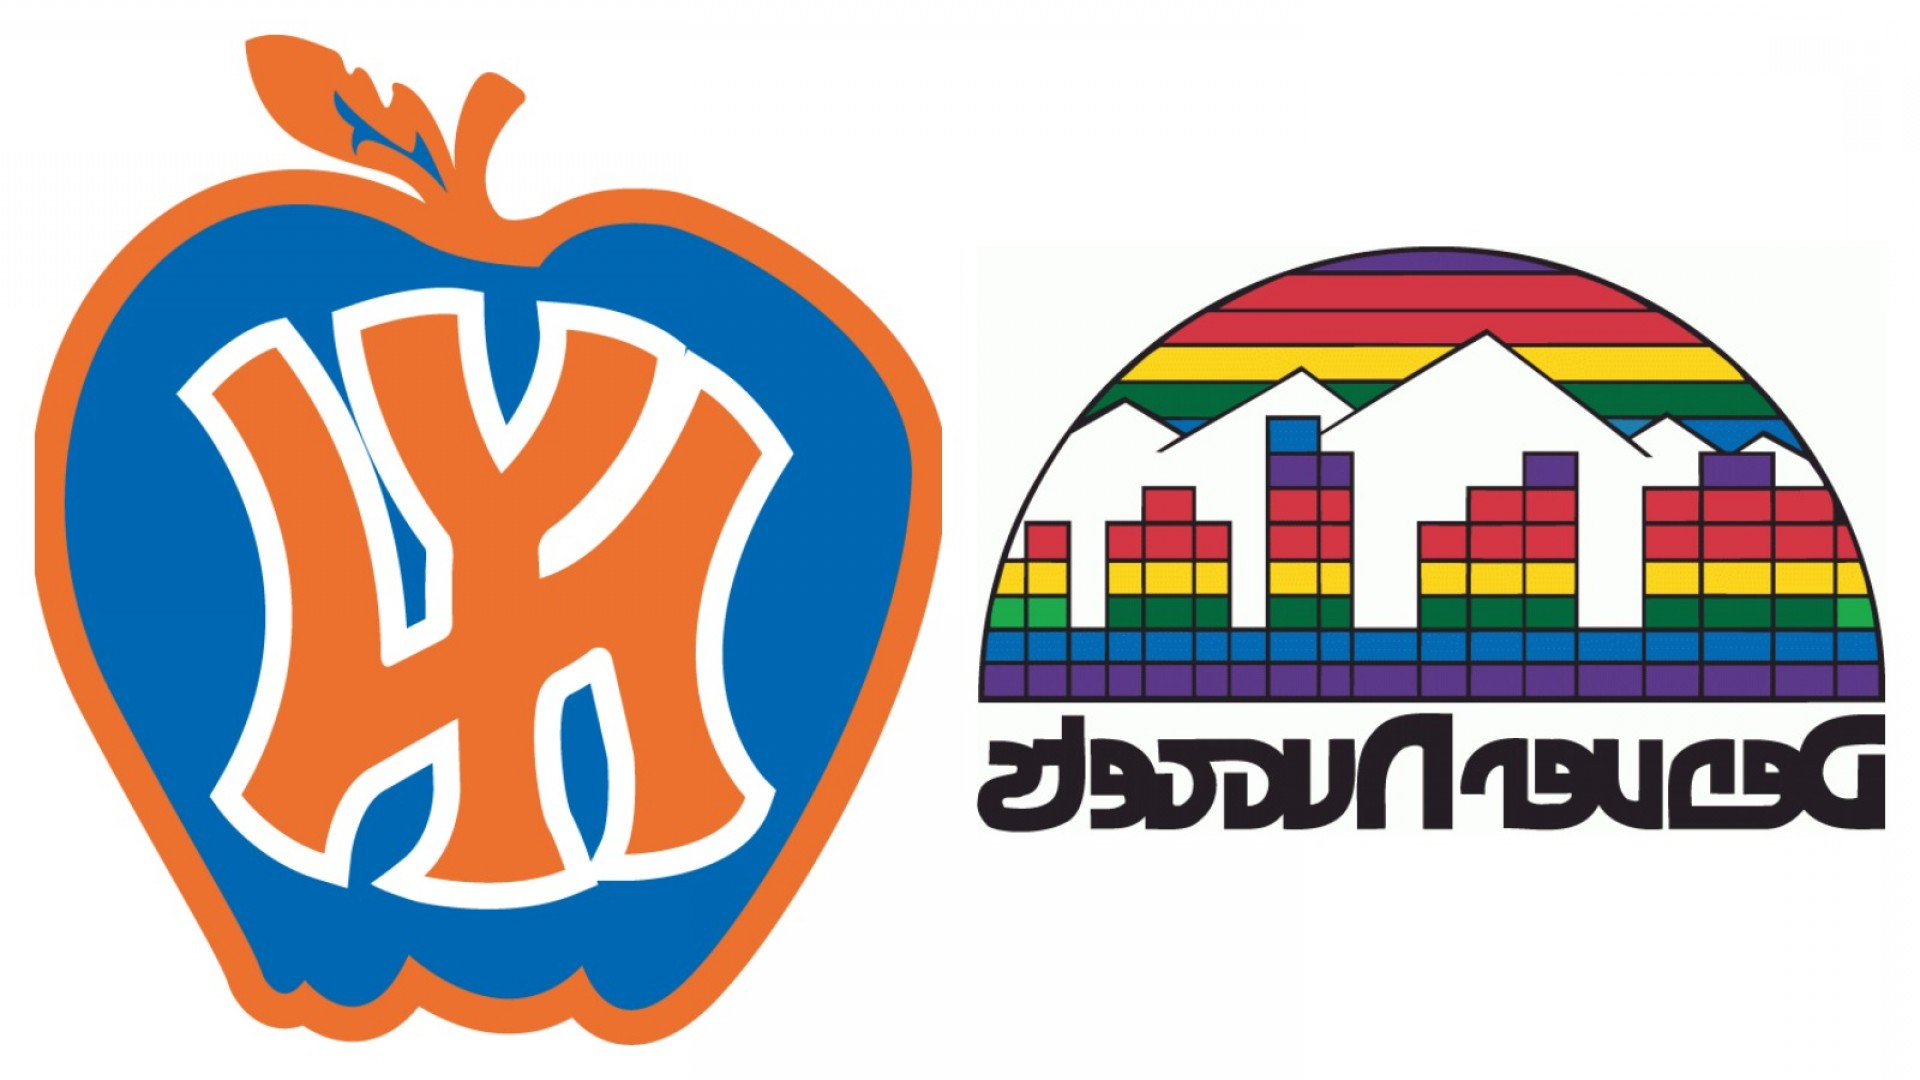 Vector NBA LogoArt: Nba Logos Every Team Best Worst All Time Franchise